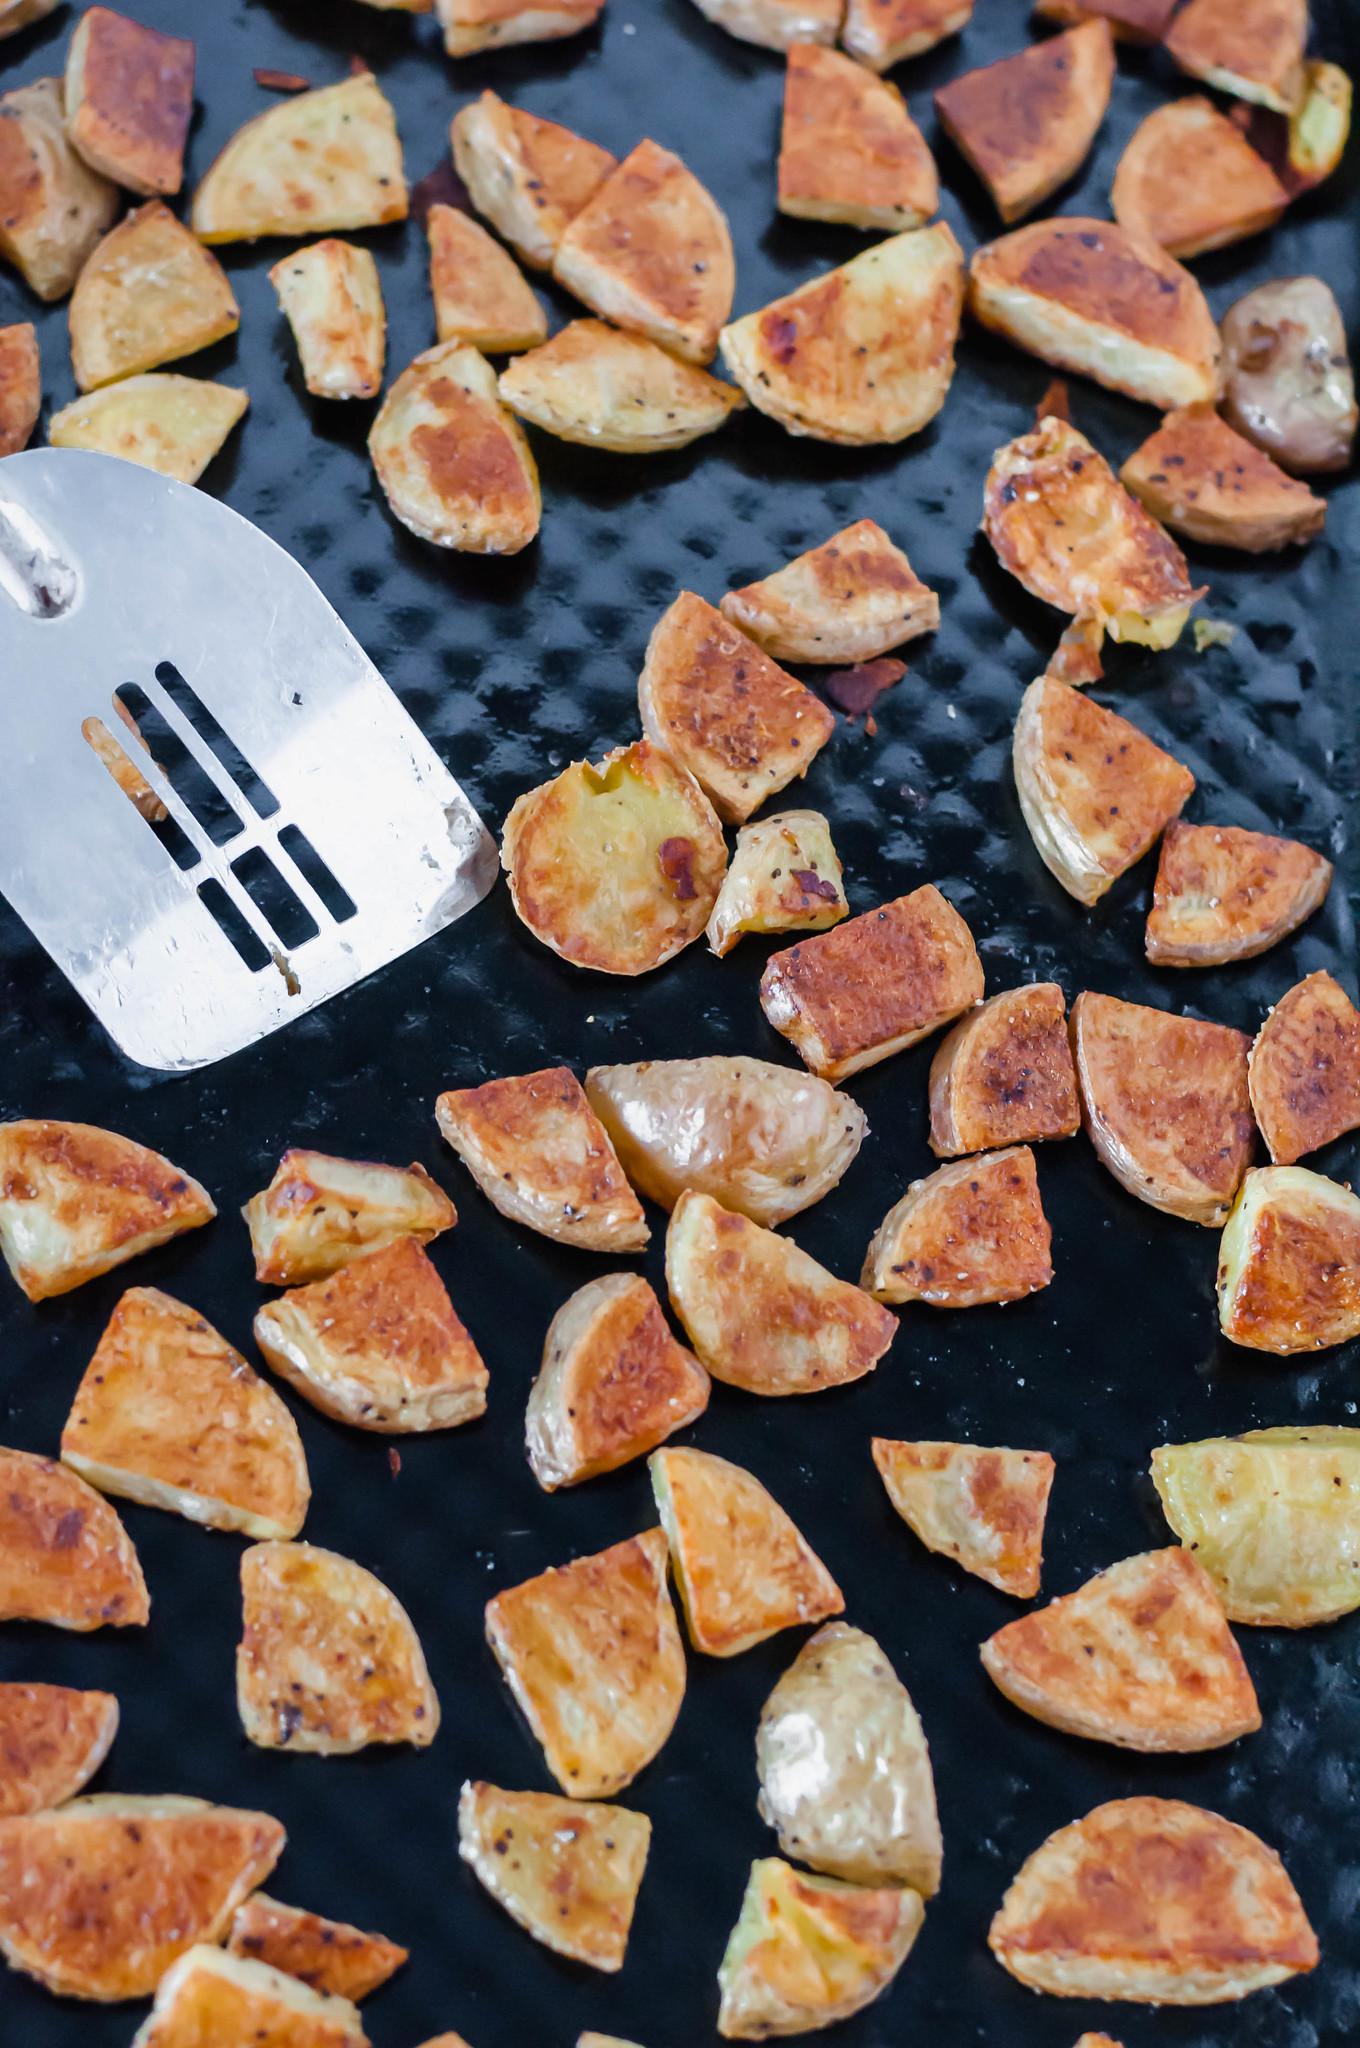 Learn how to make the crispiest potatoes around. These Crispy Roasted Potatoes are simple to make. The crispy exterior and tender, fluffy interior will blow your mind. Read the post for all the tips on making crispy roasted potatoes.